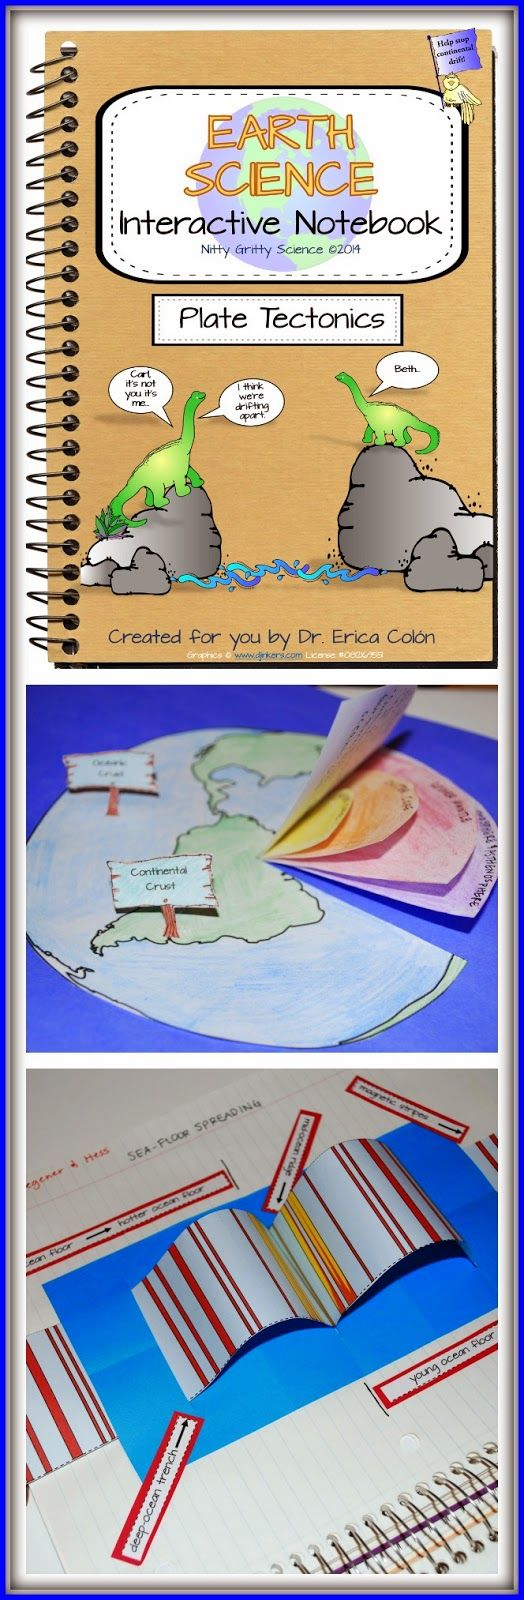 Introducing Earth Science Interactive Notebooks - Plate Tectonics from Nitty Gritty Science!